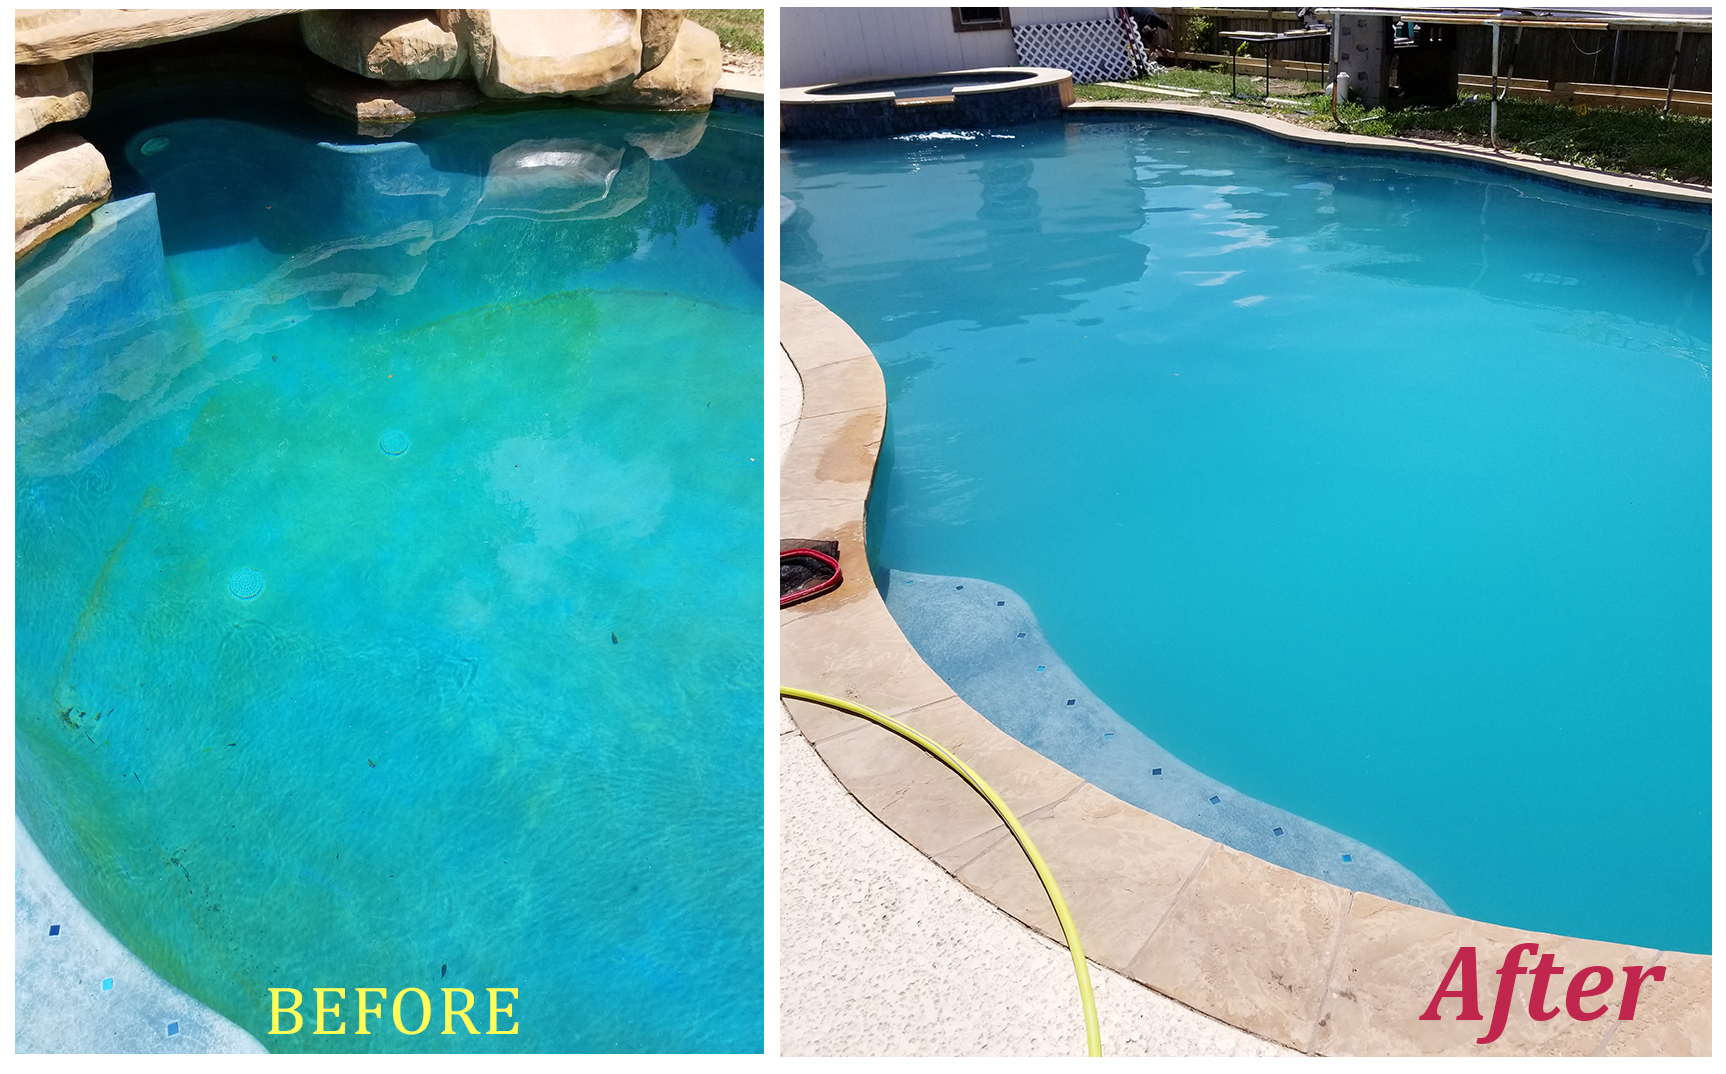 Pool-1_Before+After